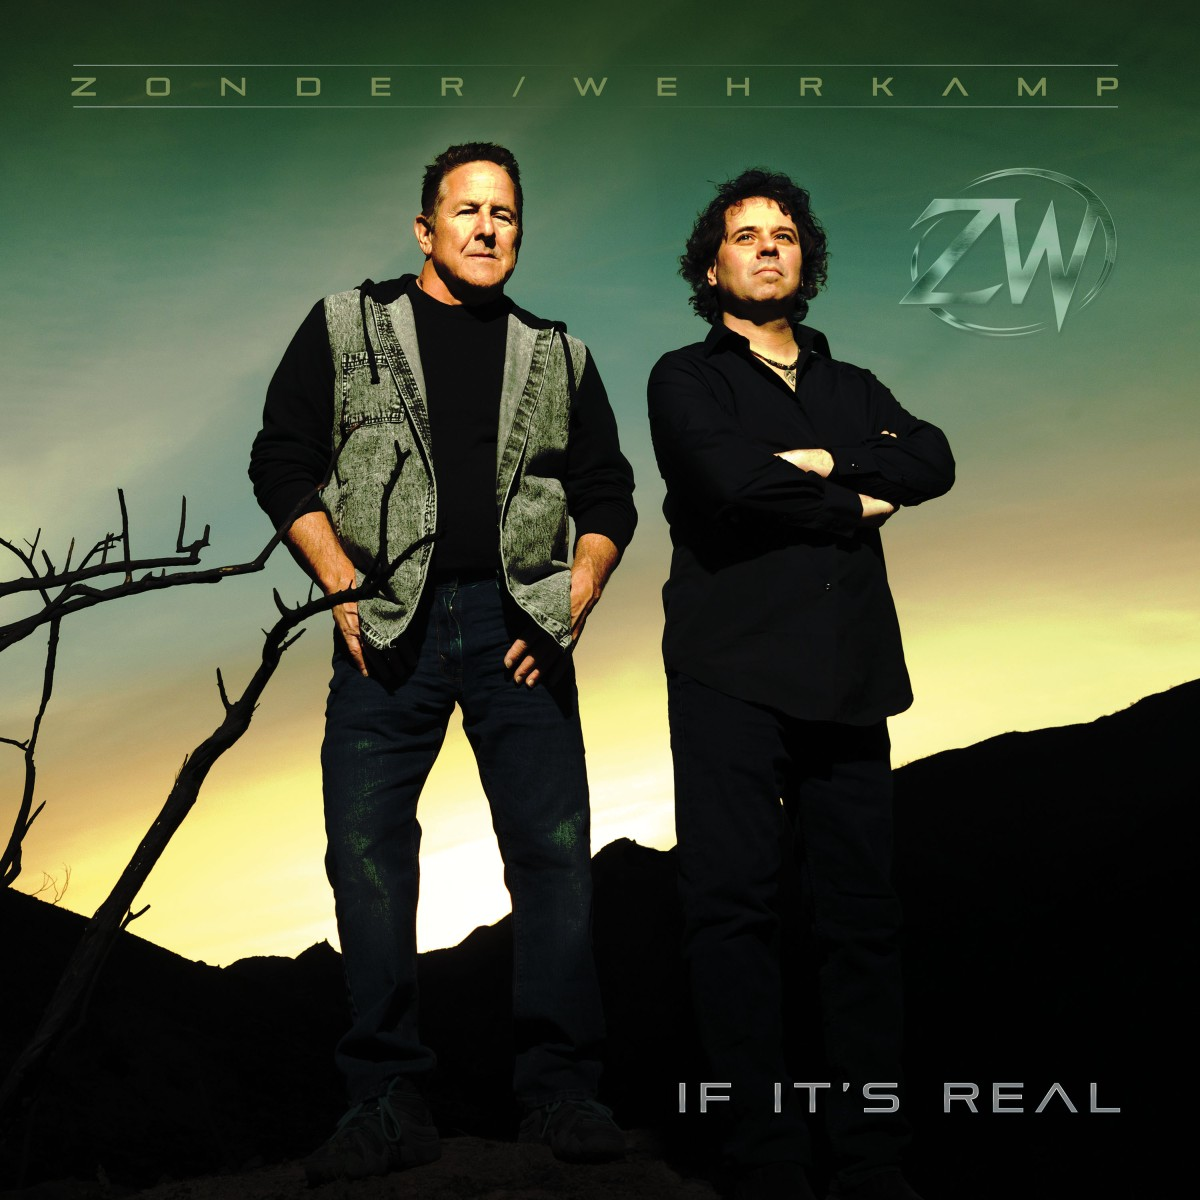 CD review ZONDER/WEHRKAMP ZW BAND 'If it's Real'